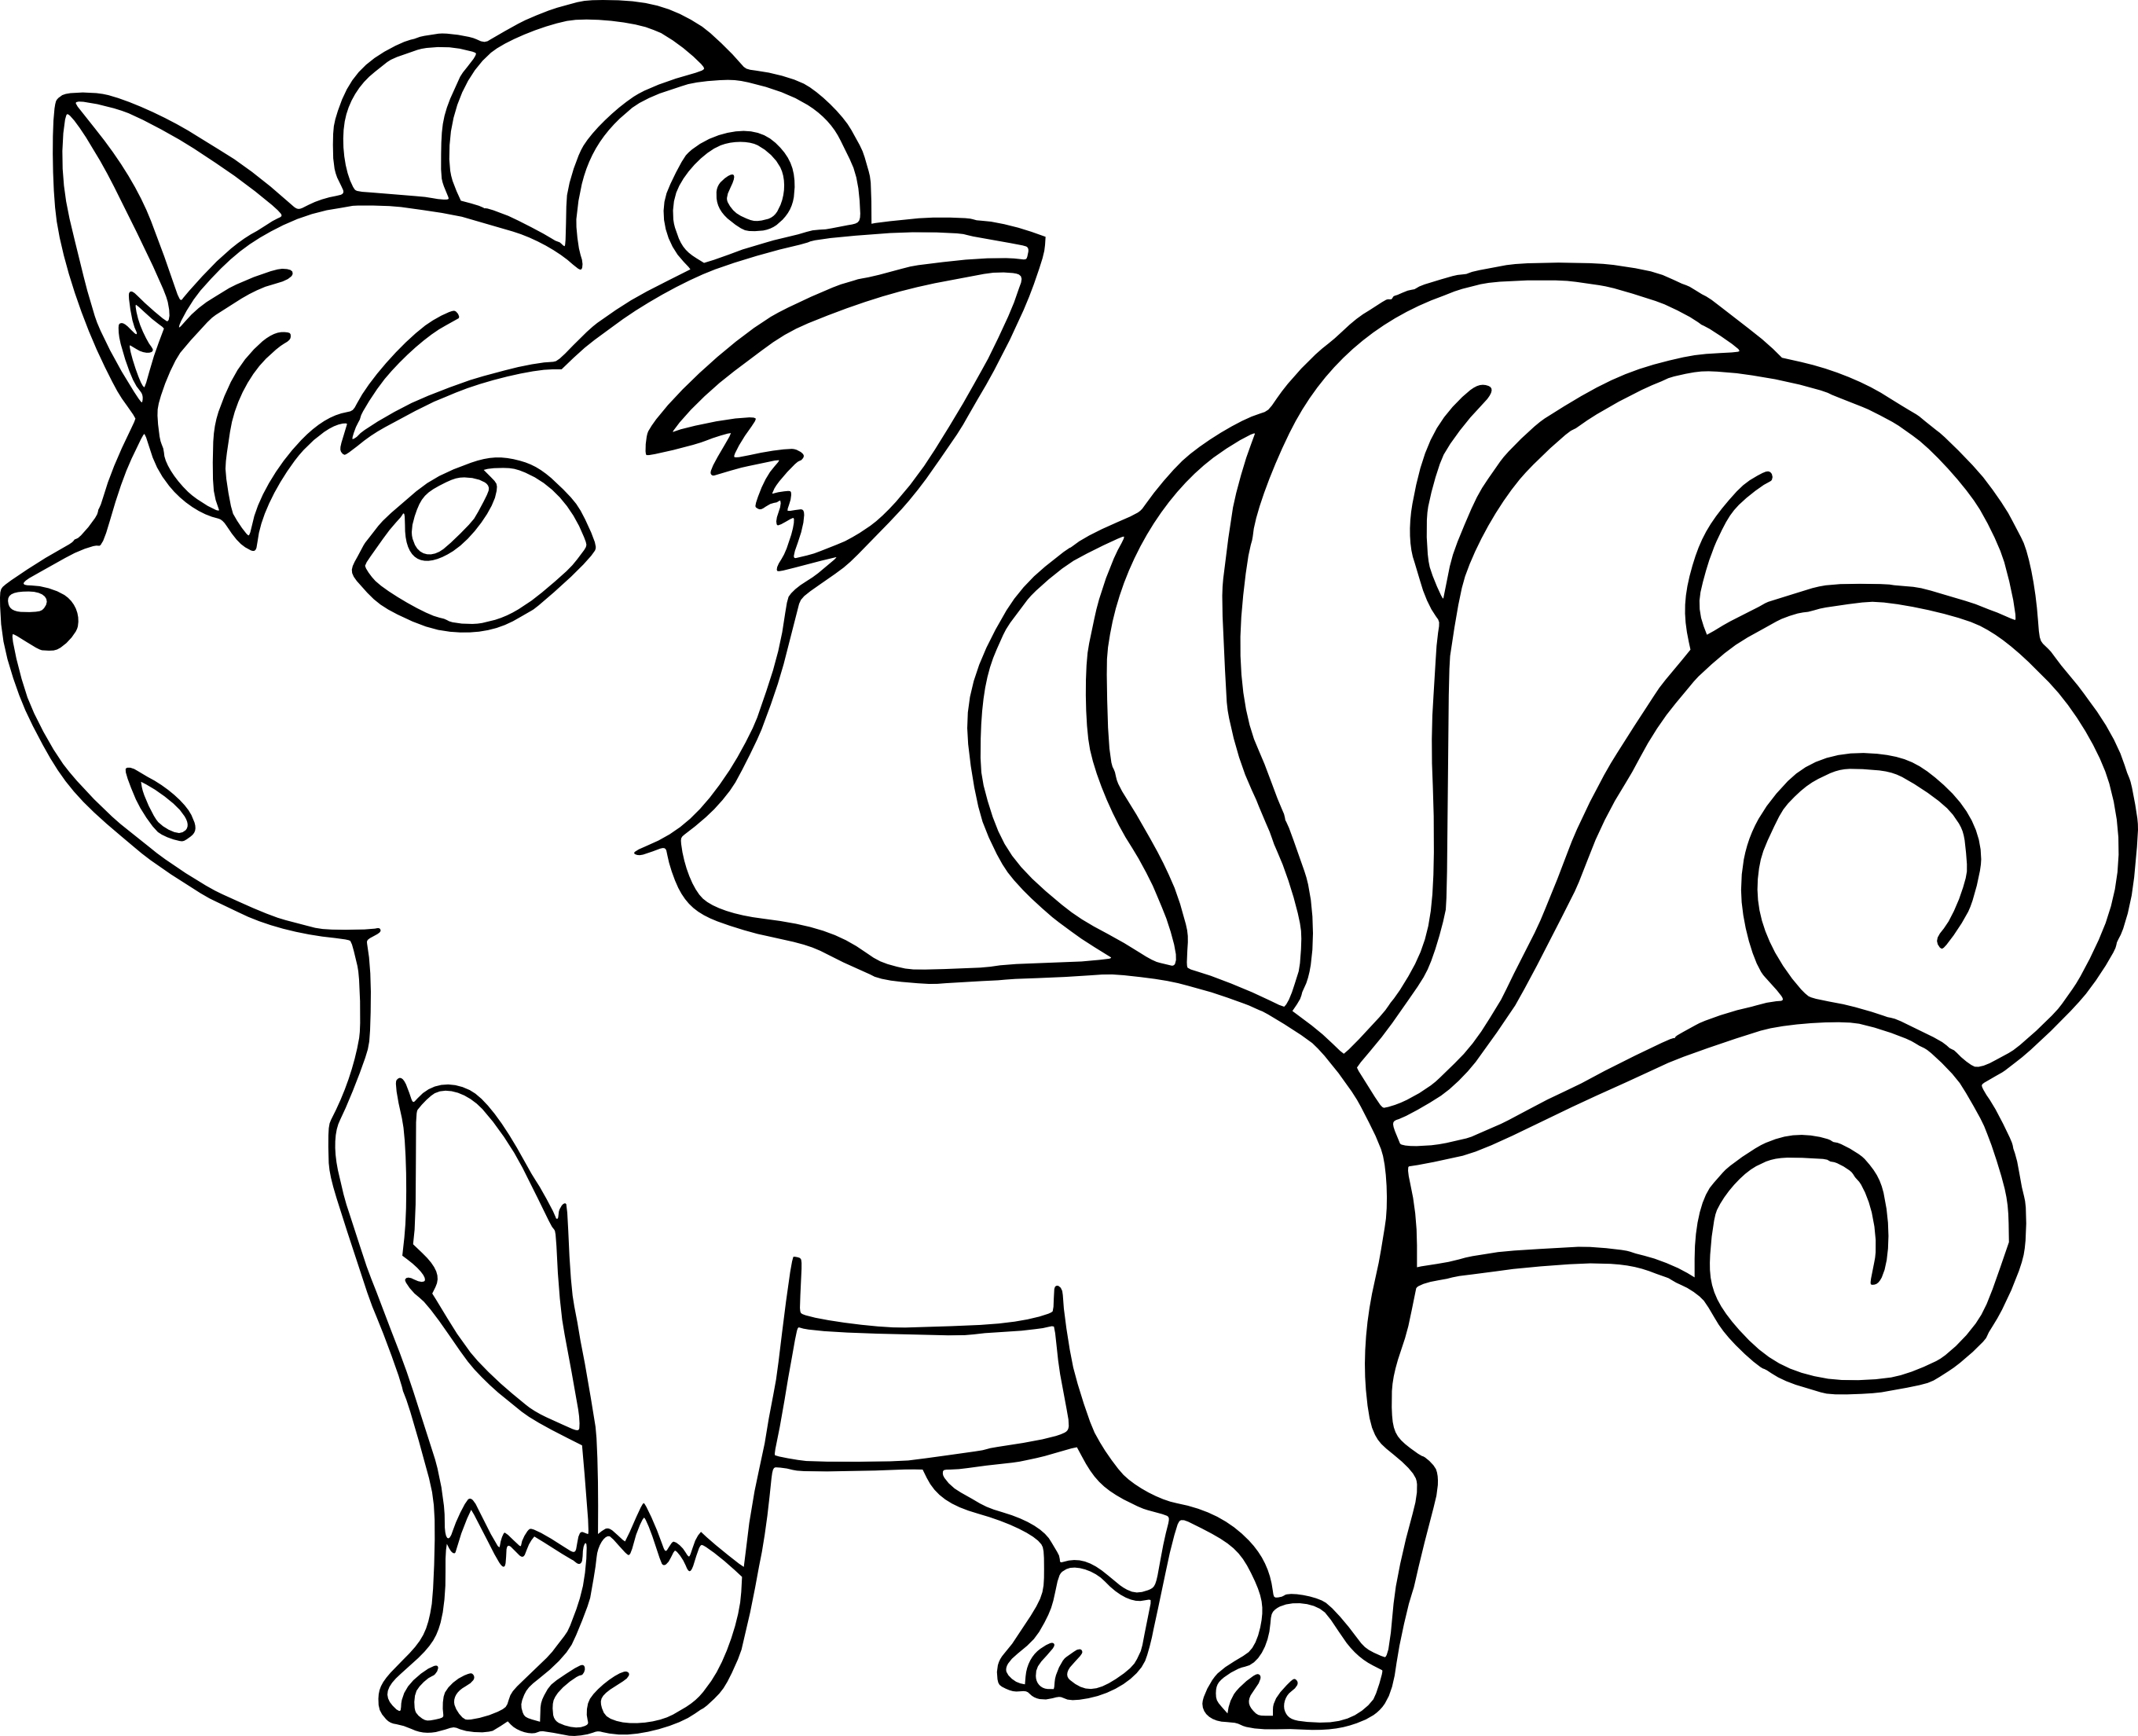 fire pokemon coloring pages fire pokemon coloring pages arcanine online and printable coloring fire pokemon pages